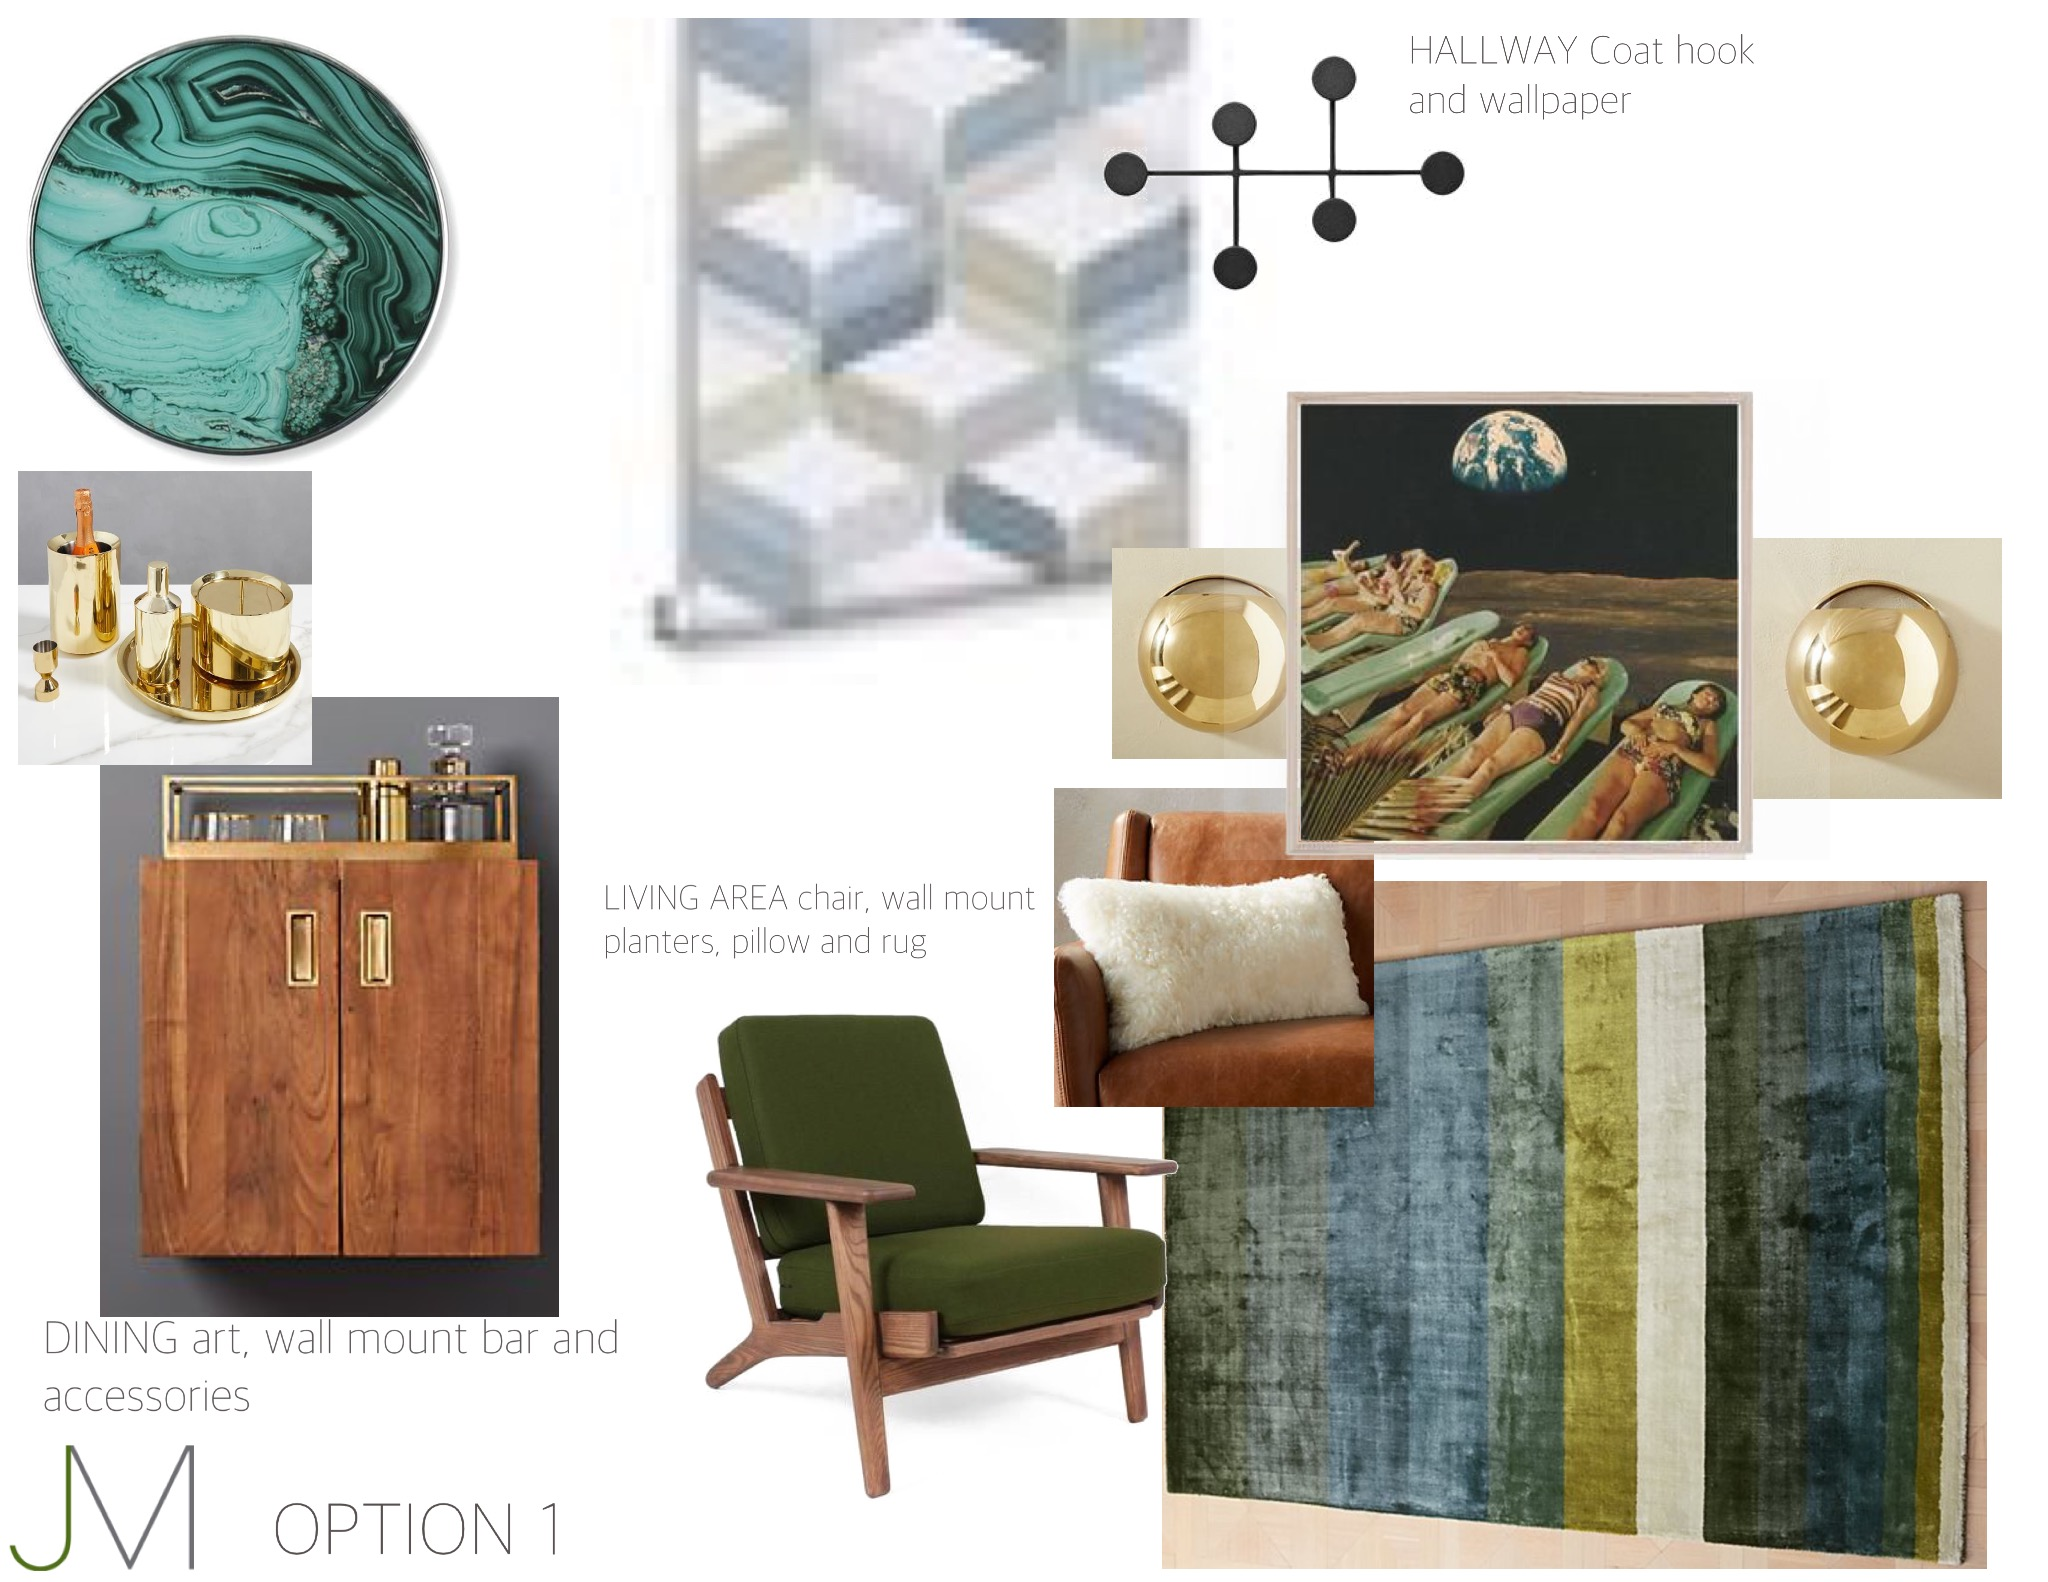 Mad Men Made New - Rich, dark wood accents, plush rug, the mandatory bachelor's home mini-bar and sexy, conversation piece art make a cozy, sleek space.